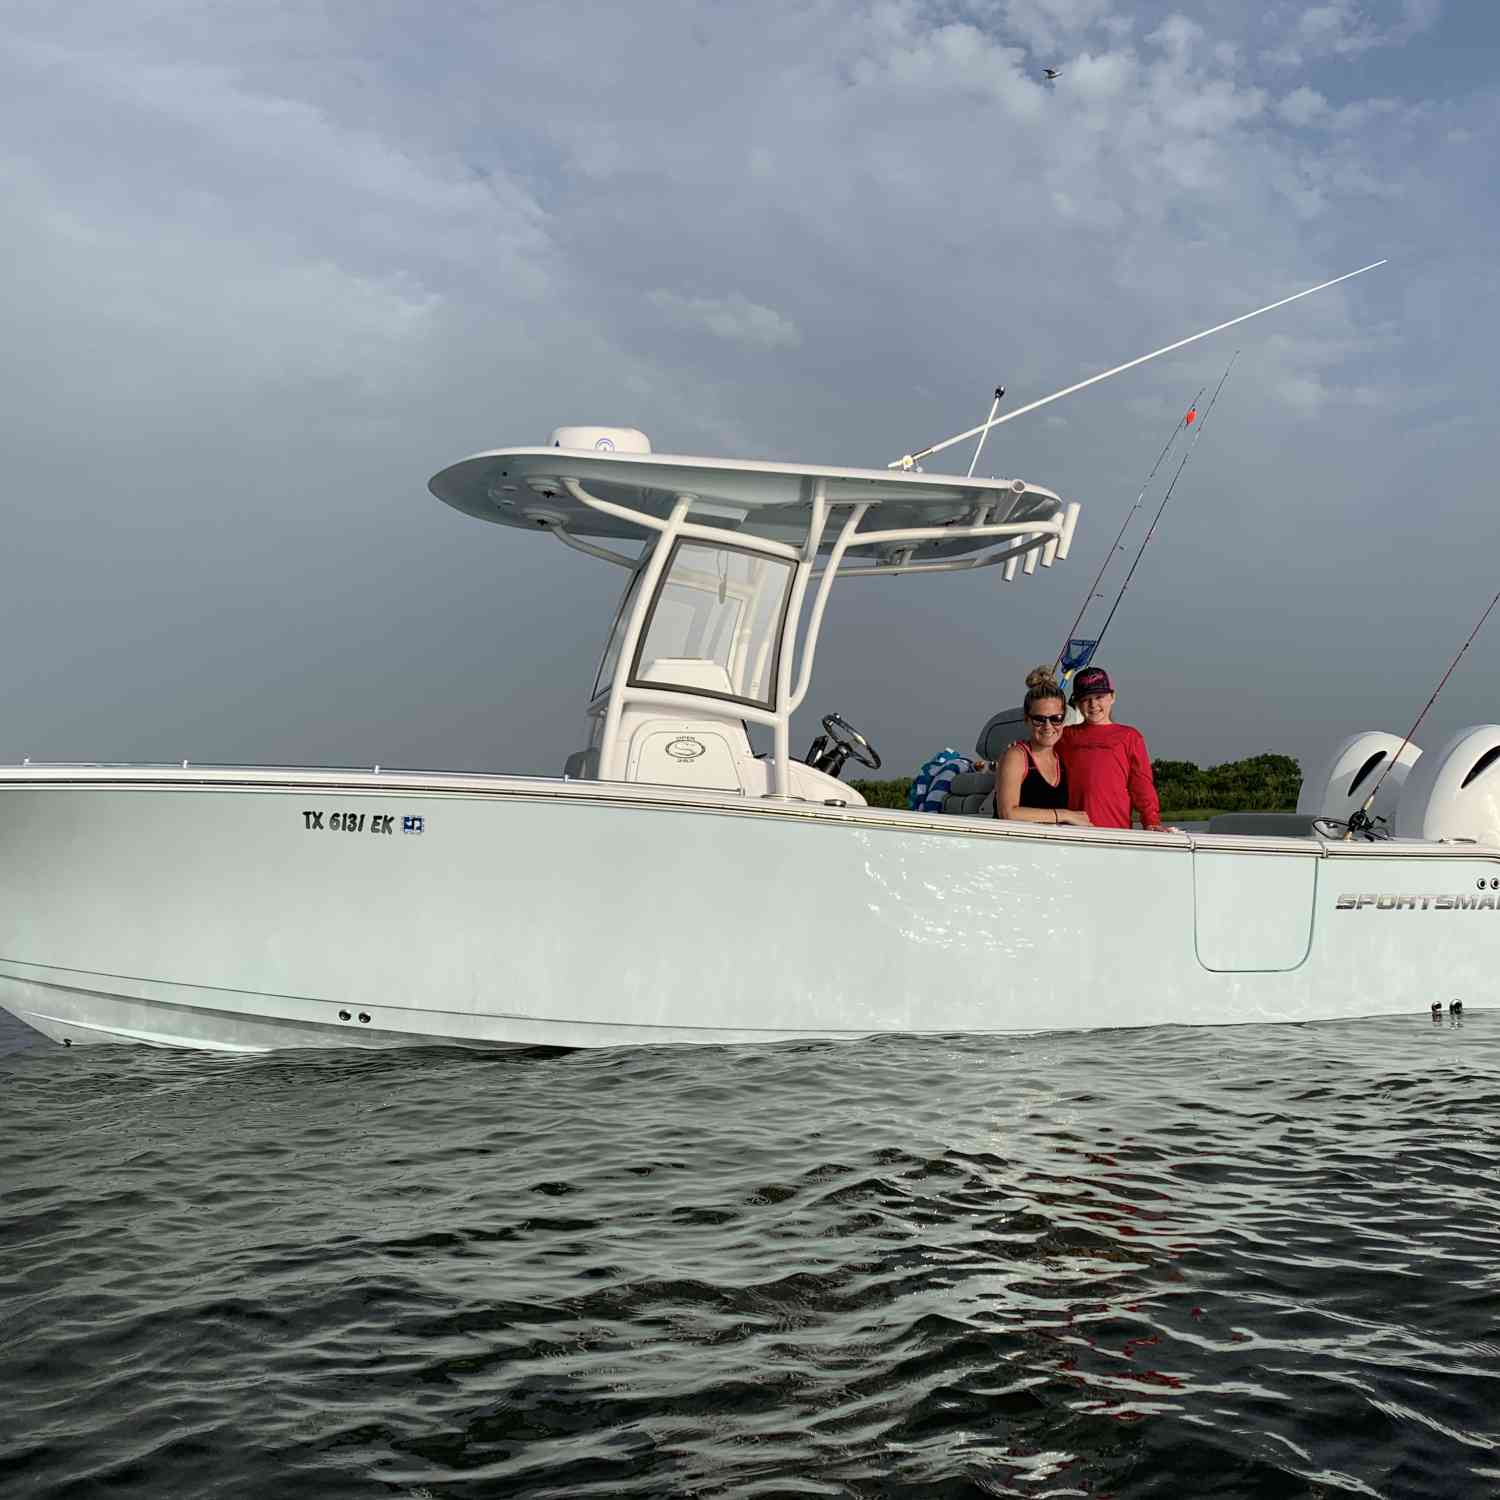 Title: Family fun in Galveston west Bay - On board their Sportsman Open 252 Center Console - Location: Galveston, tx. Participating in the Photo Contest #SportsmanSeptember2019